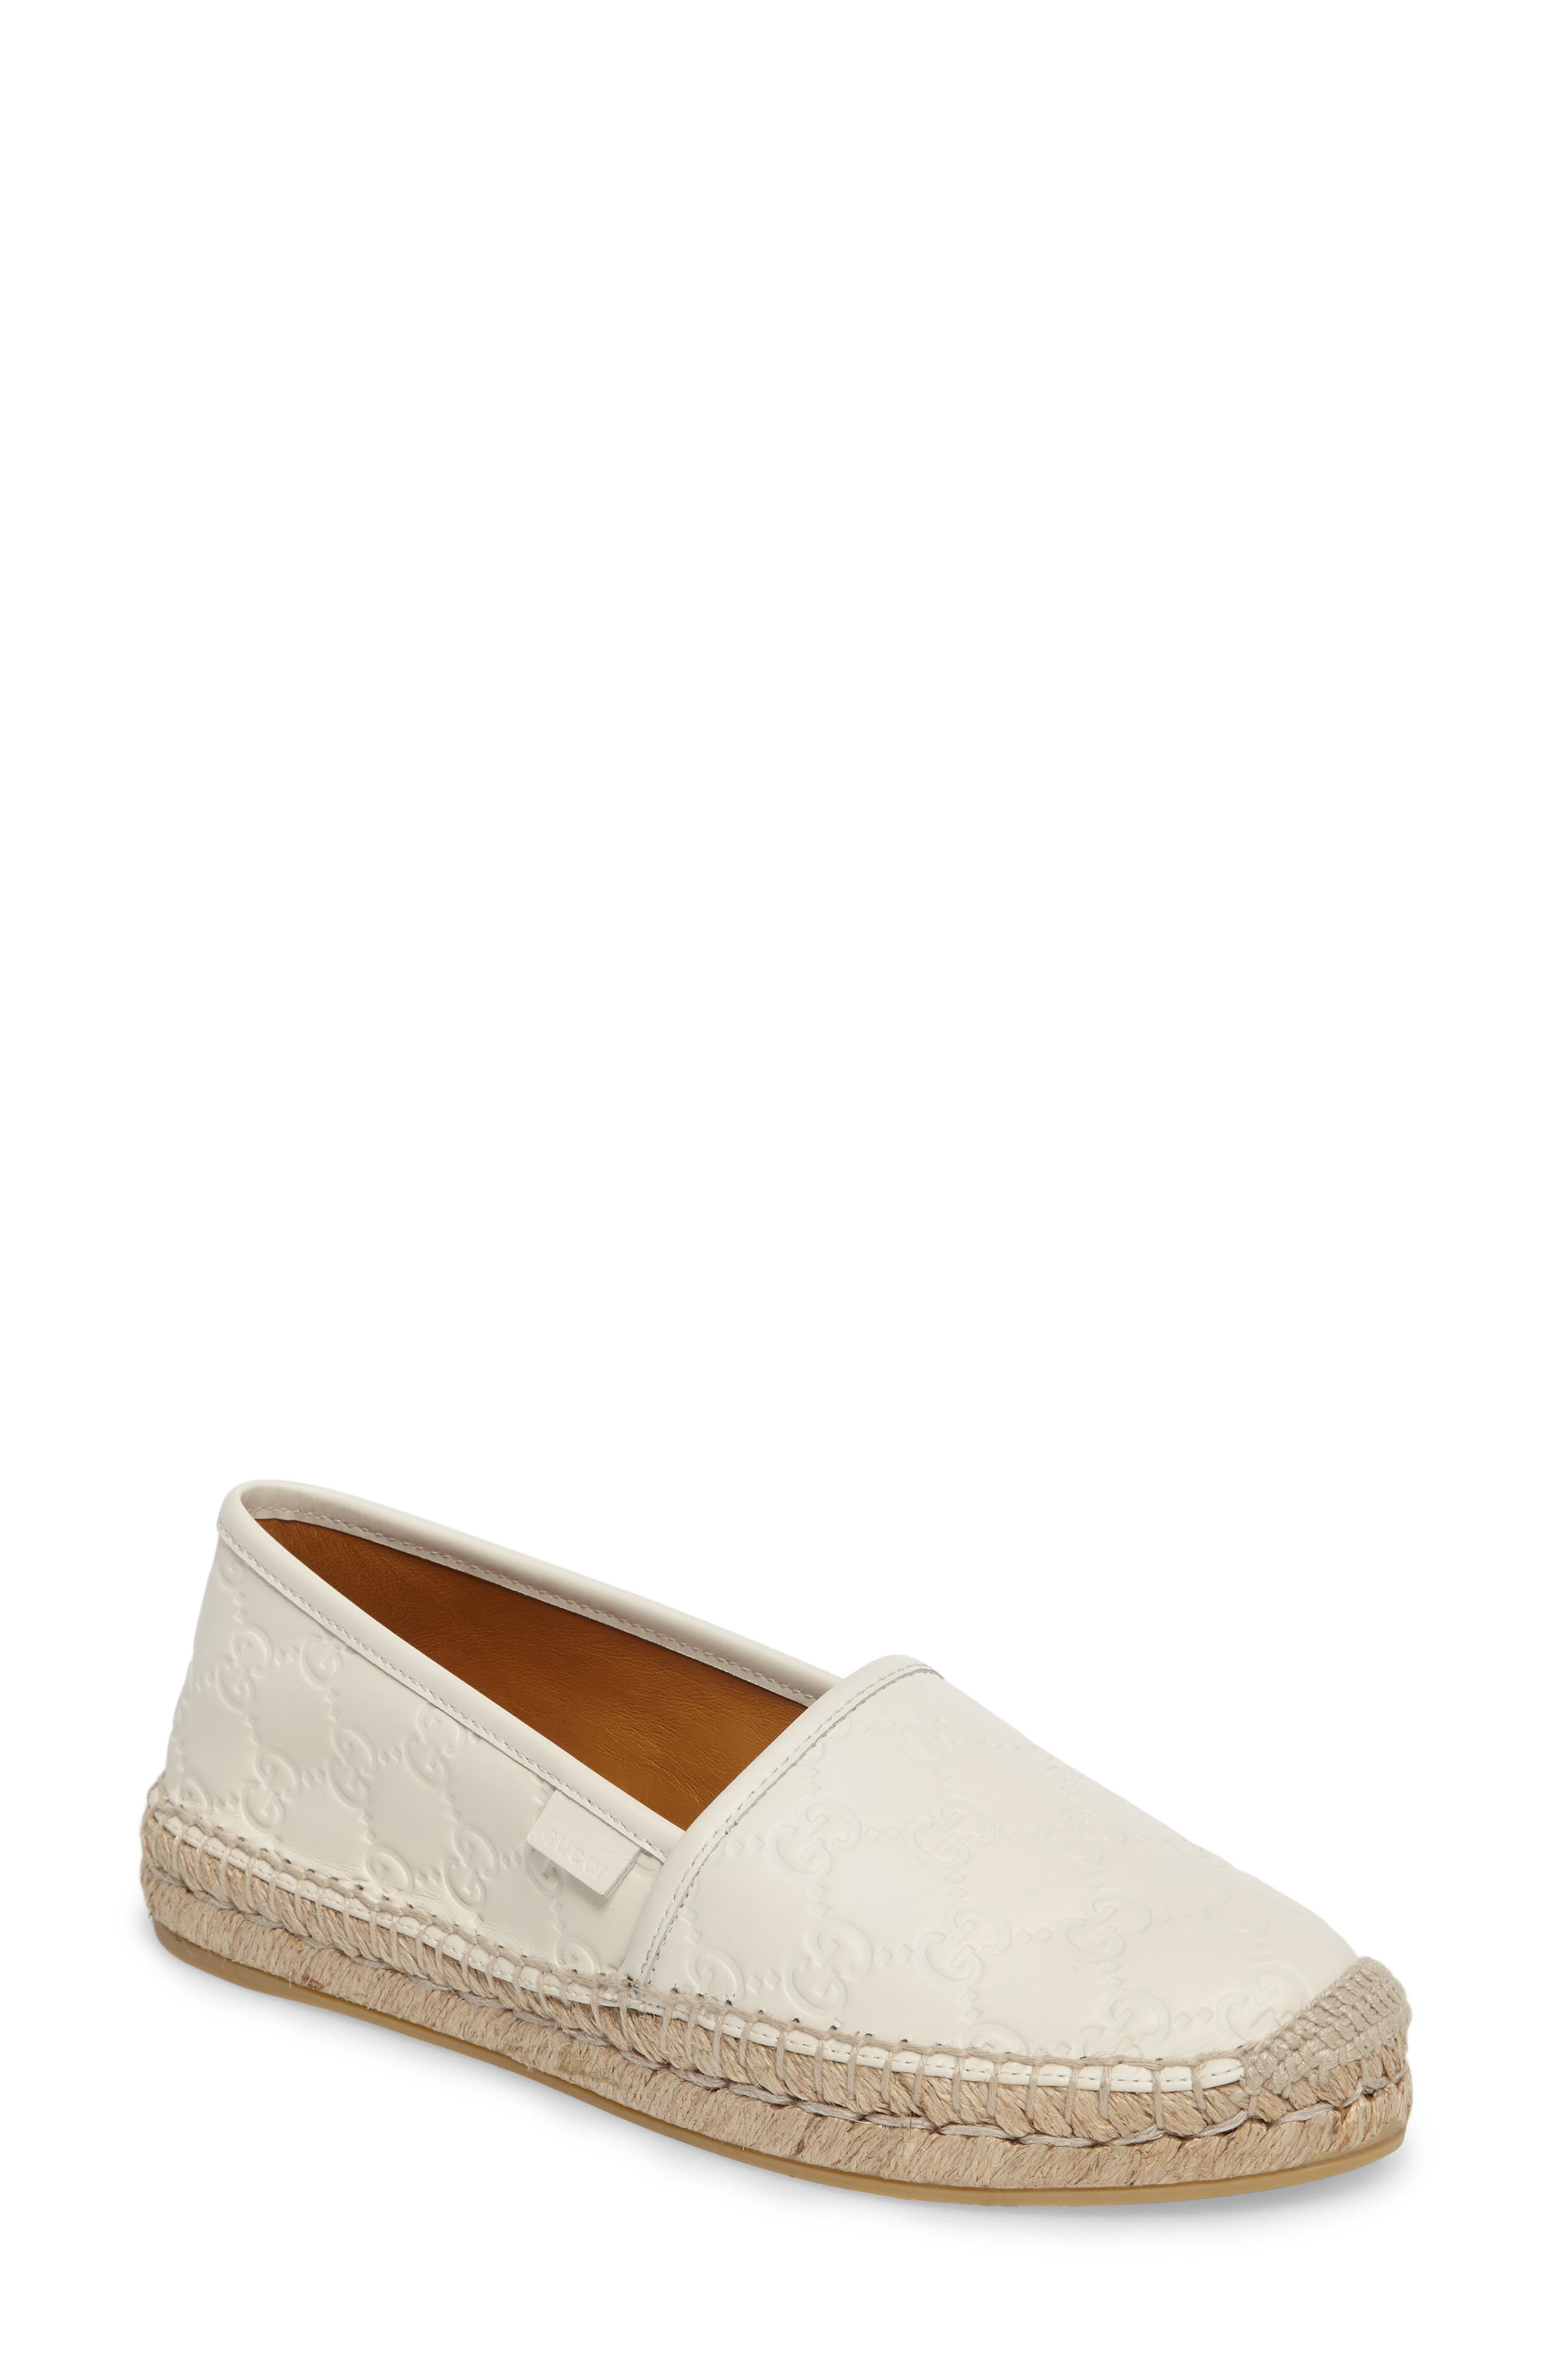 Pilar Espadrille Flat,                         Main,                         color, White Leather